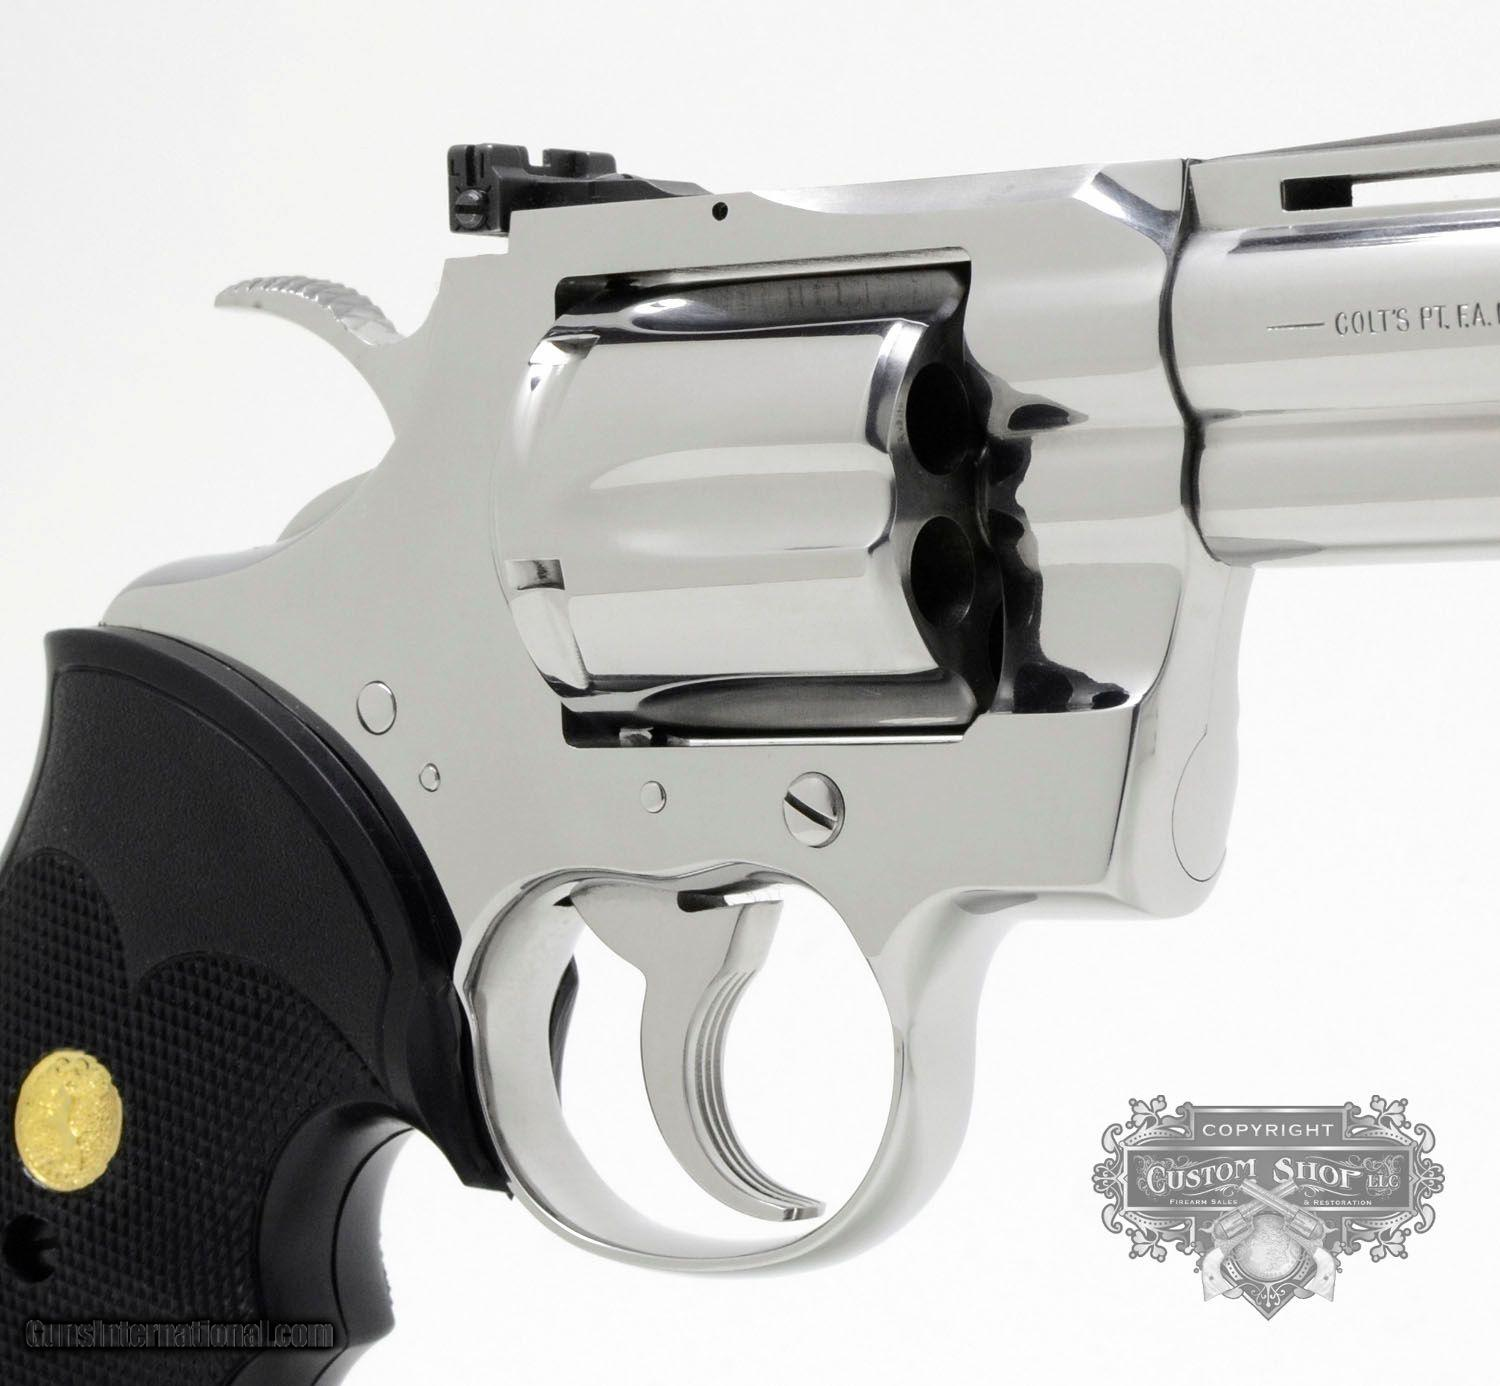 Colt Python  357 Mag  4 inch  Bright Stainless Finish  Like New In